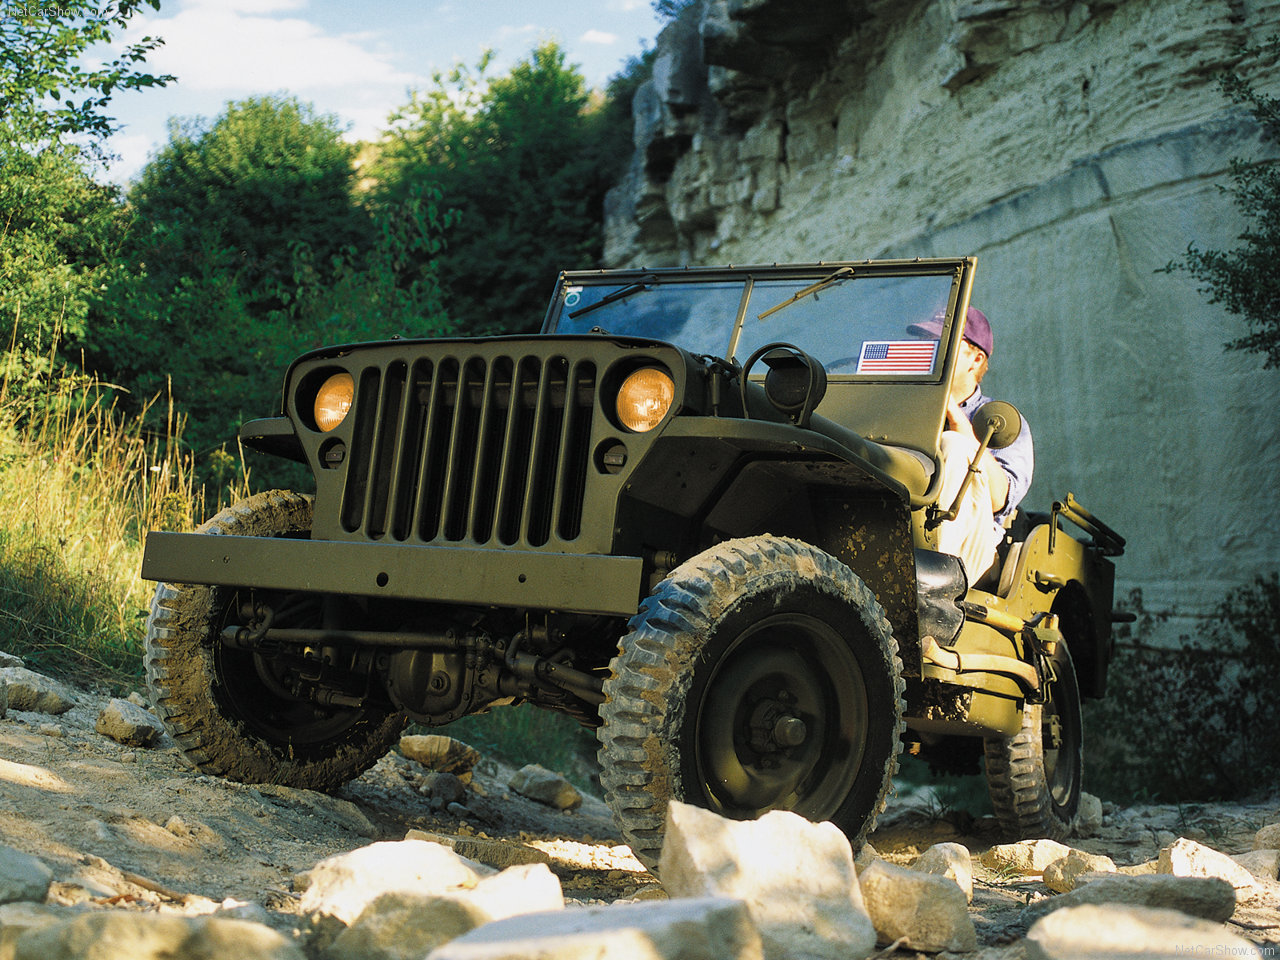 jeep willys mb 1943 jeep enthusiast. Black Bedroom Furniture Sets. Home Design Ideas